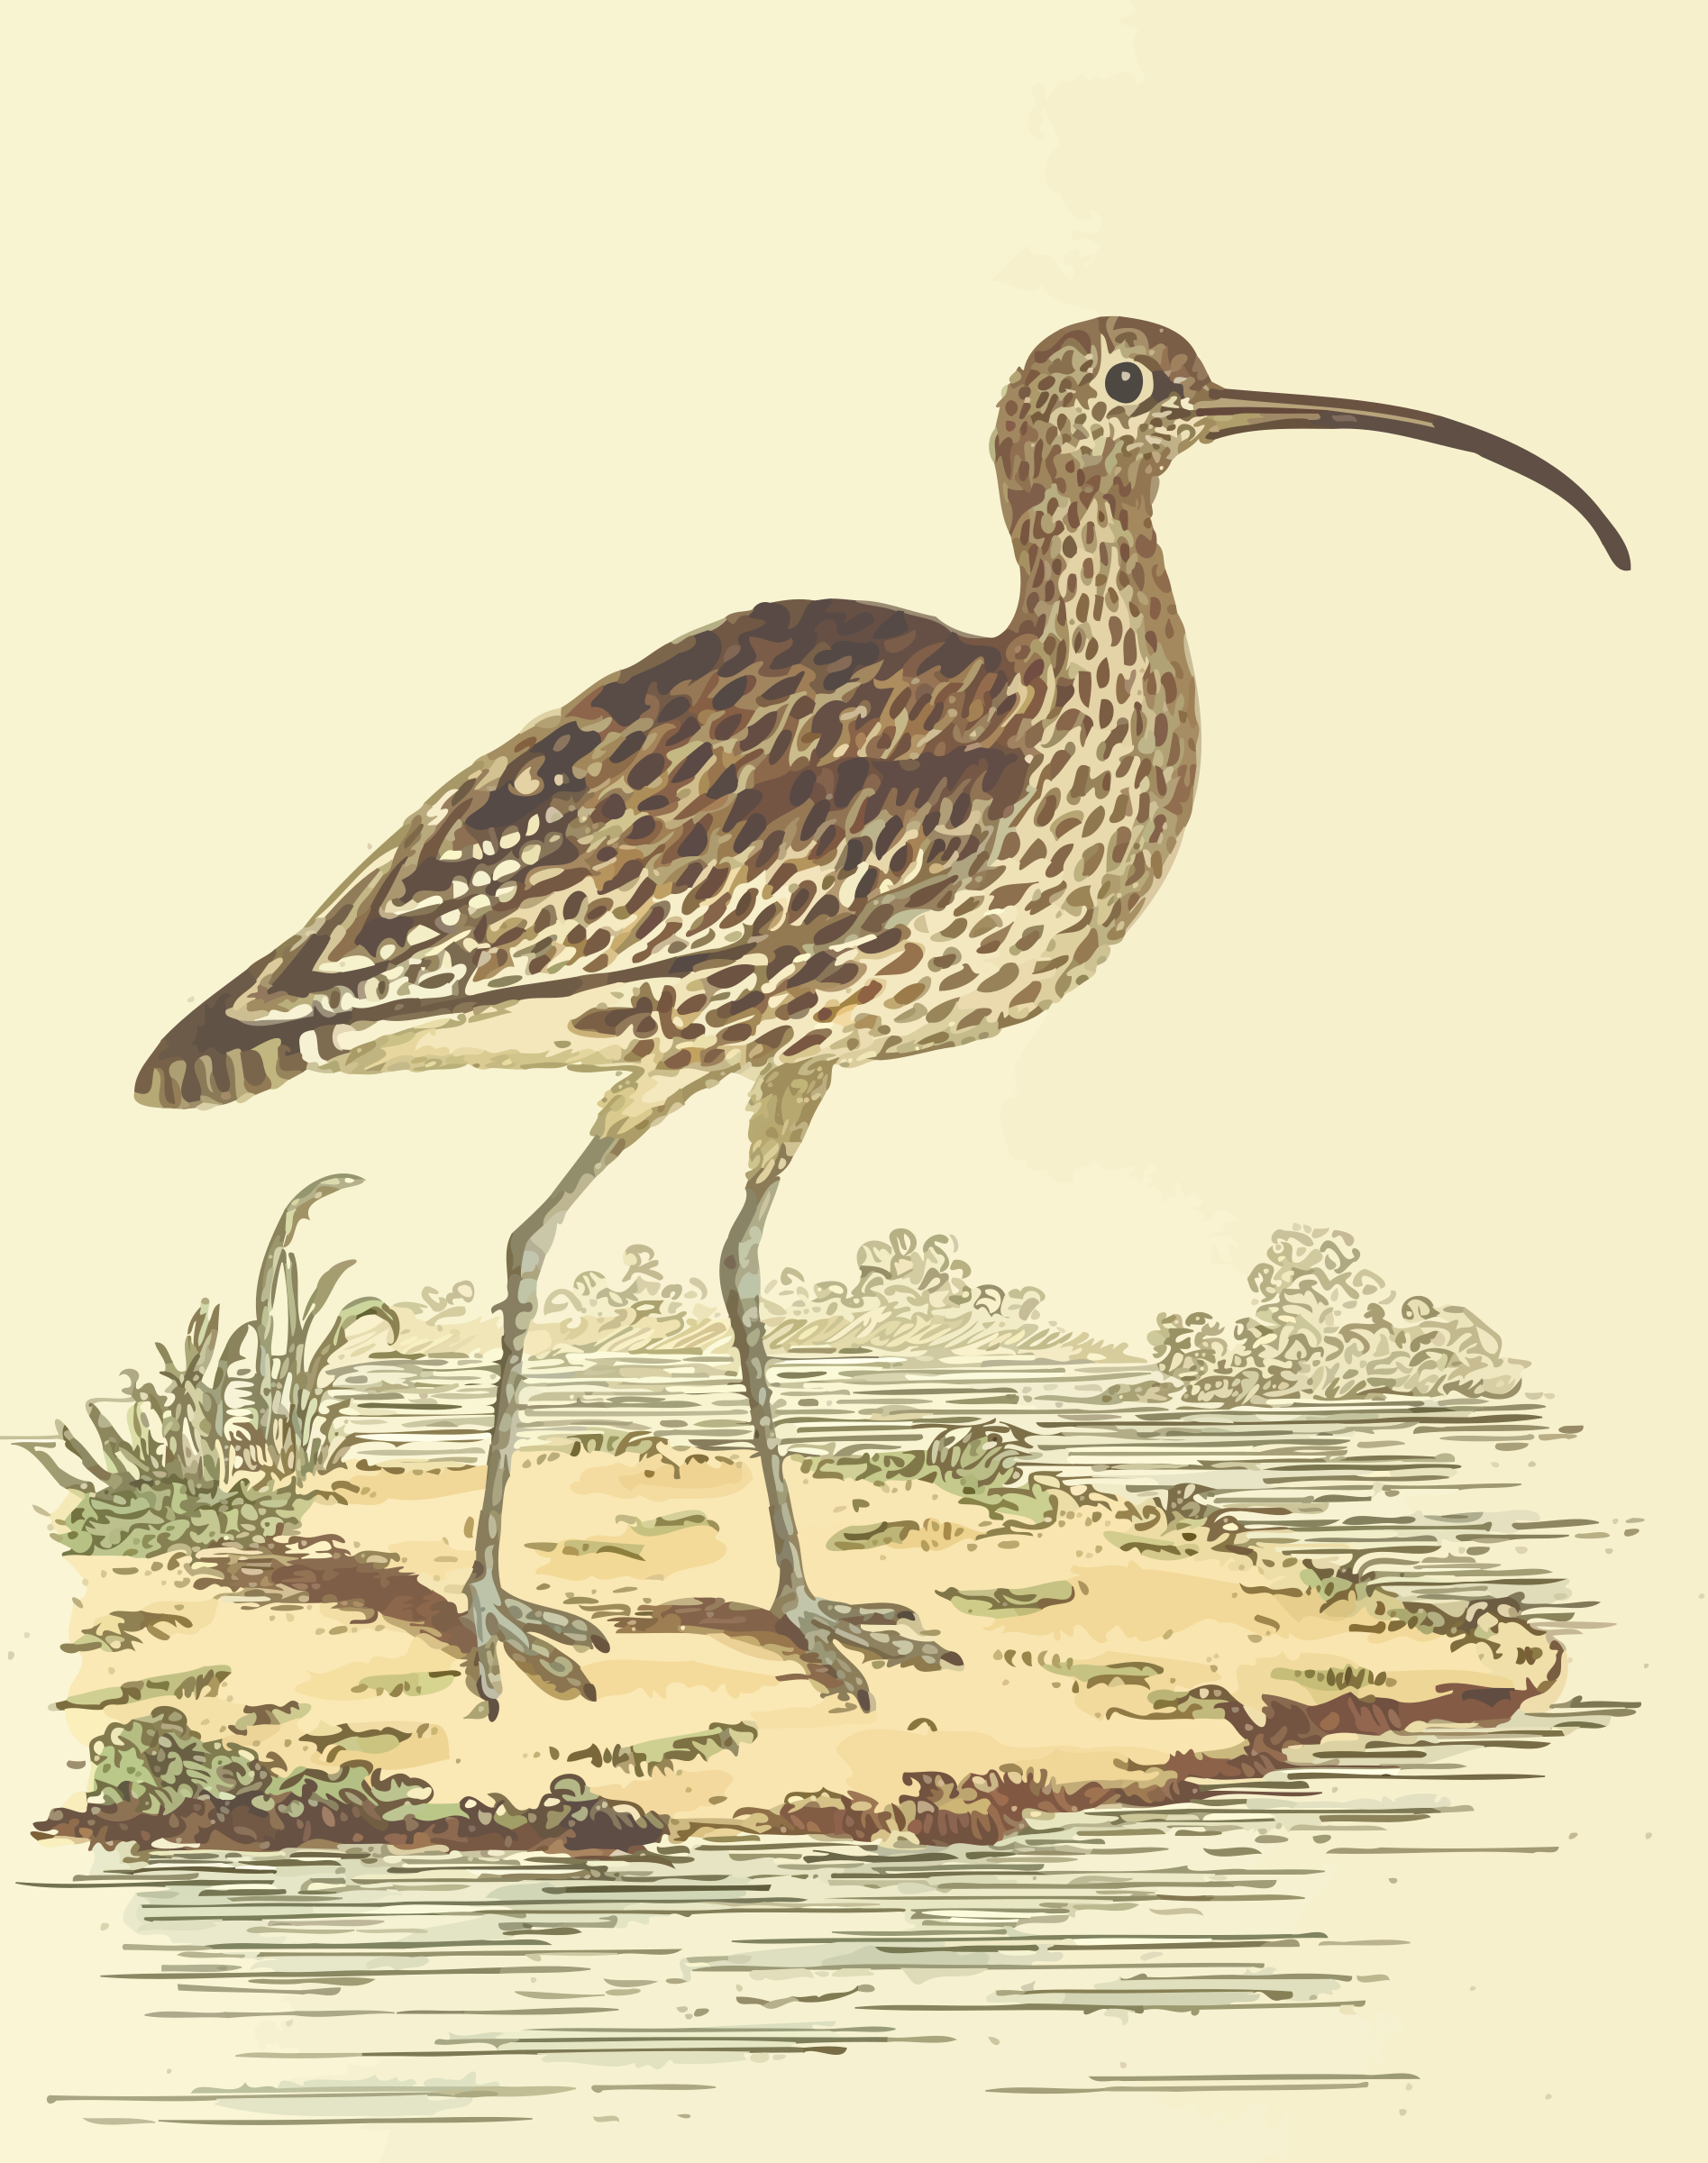 Curlew (with background) by Firkin